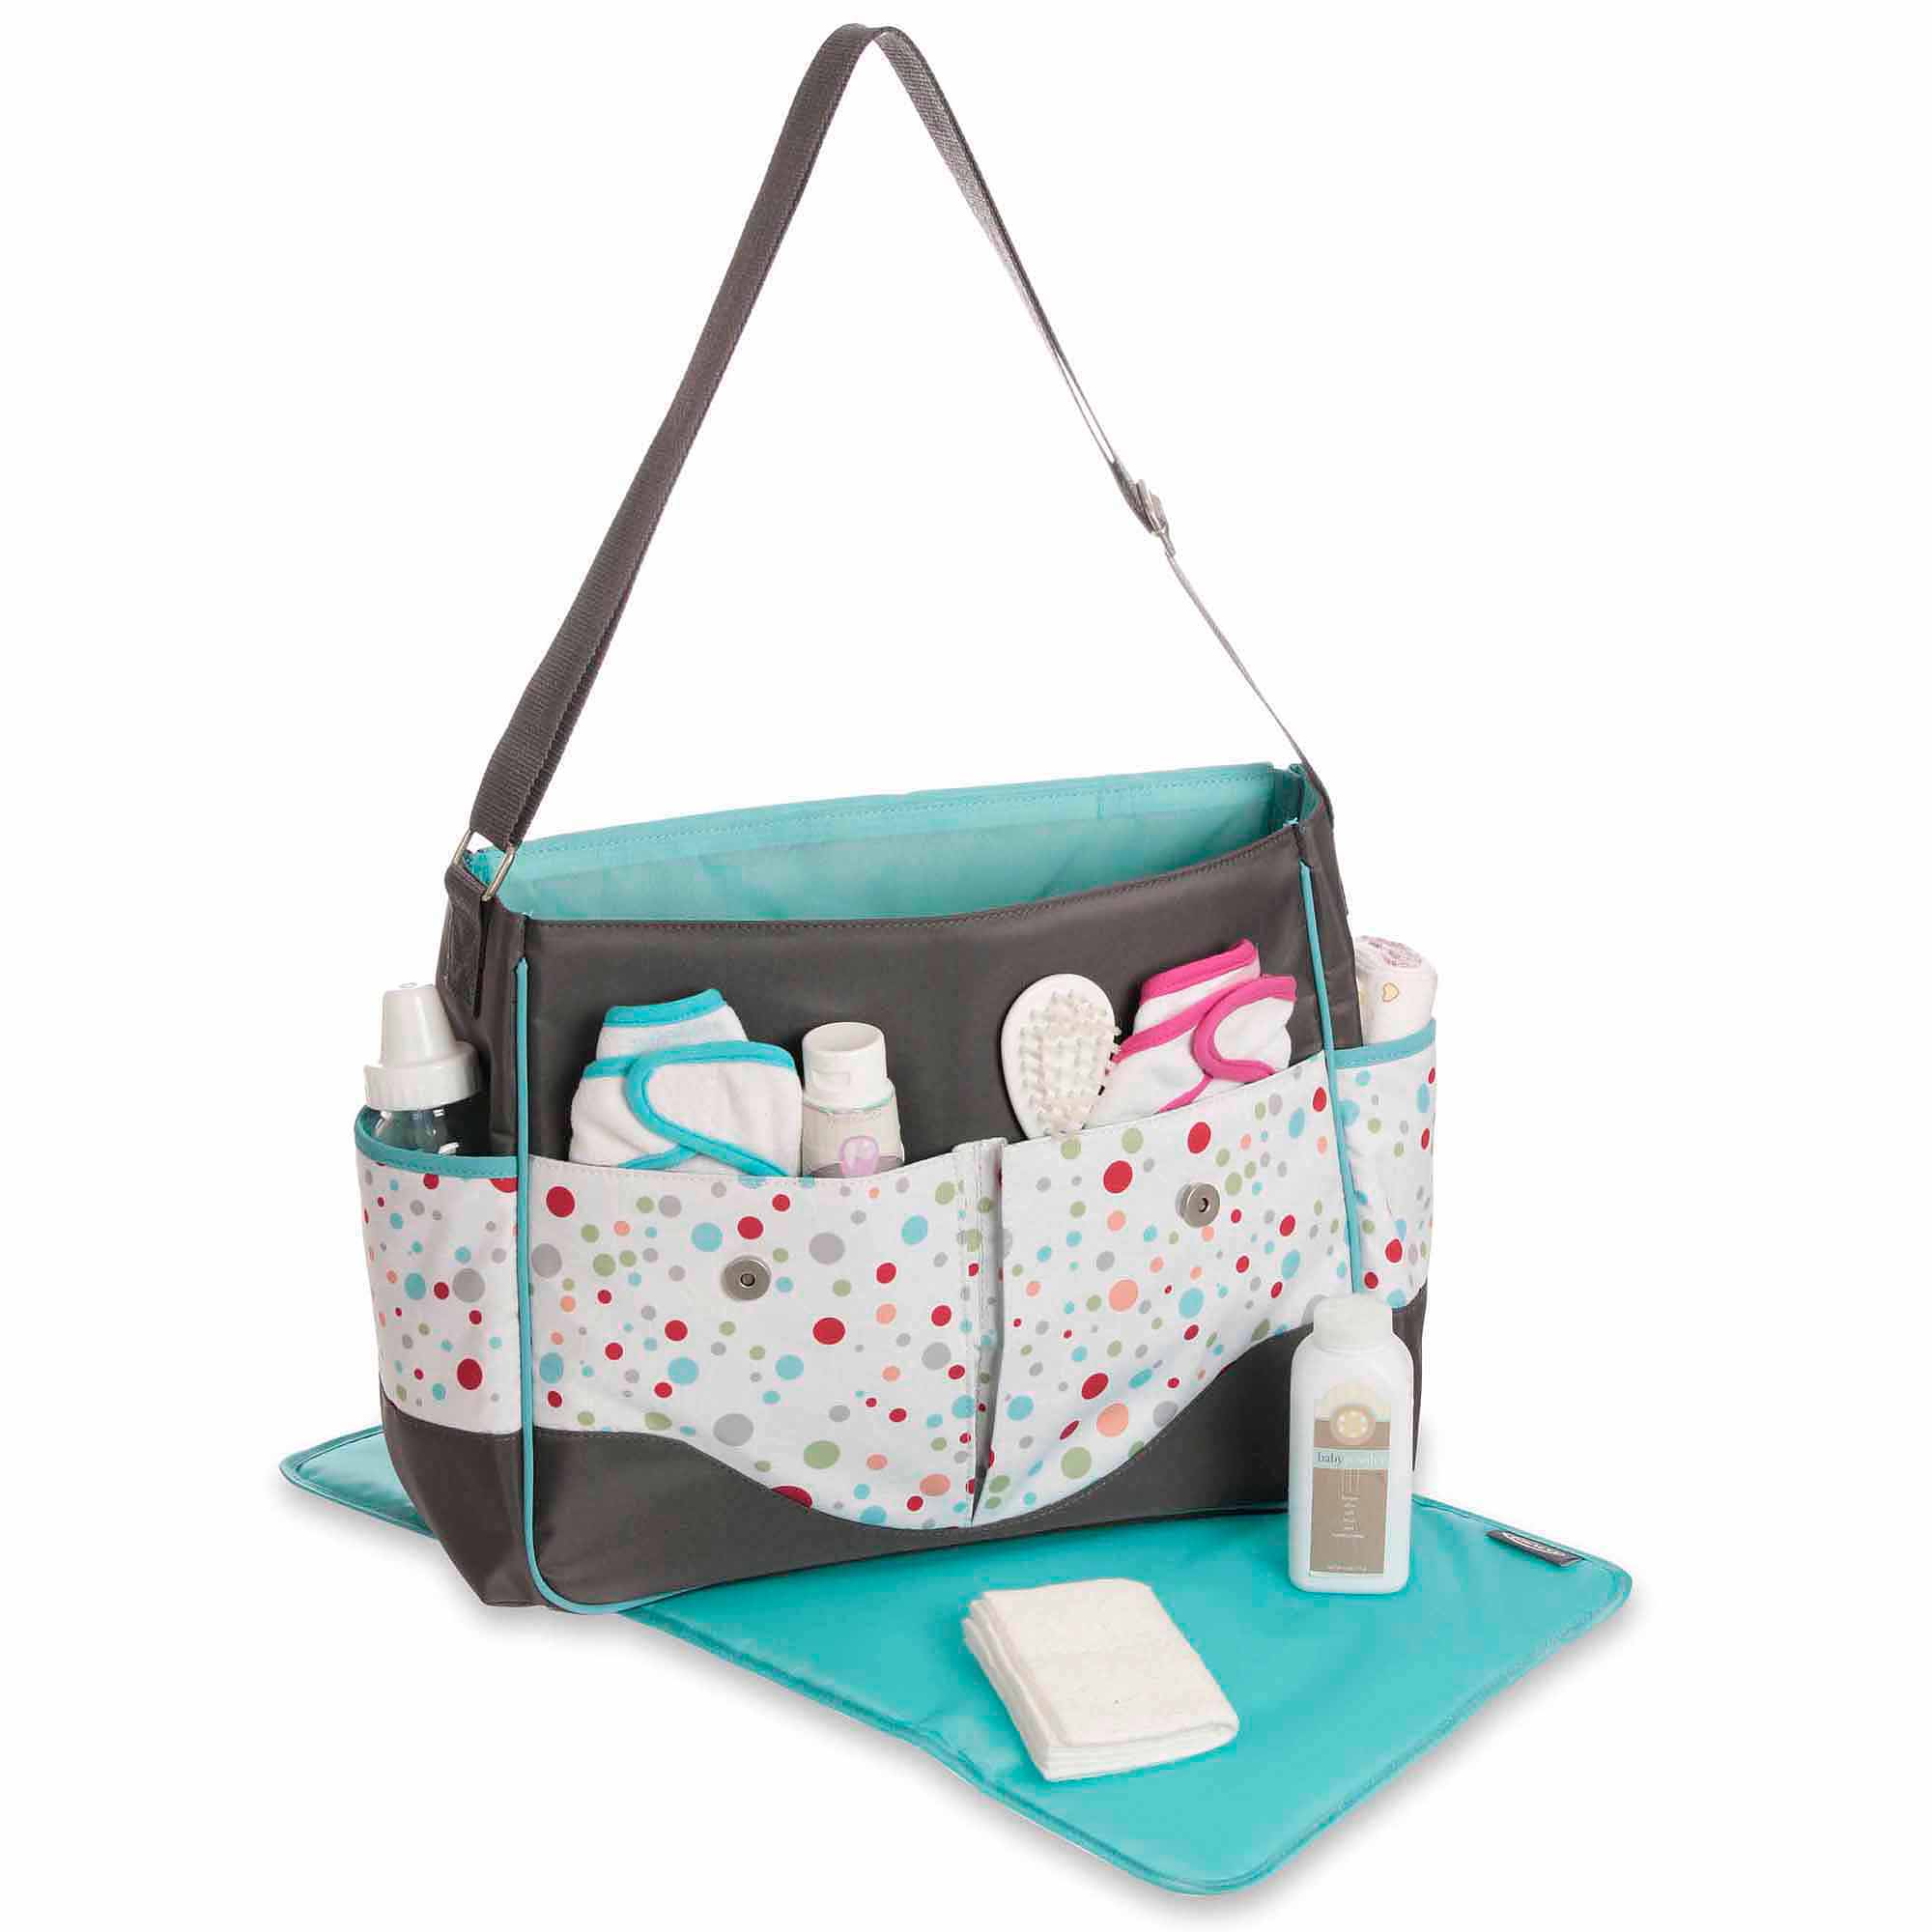 Graco Tinker Messenger Diaper Bag, Gray